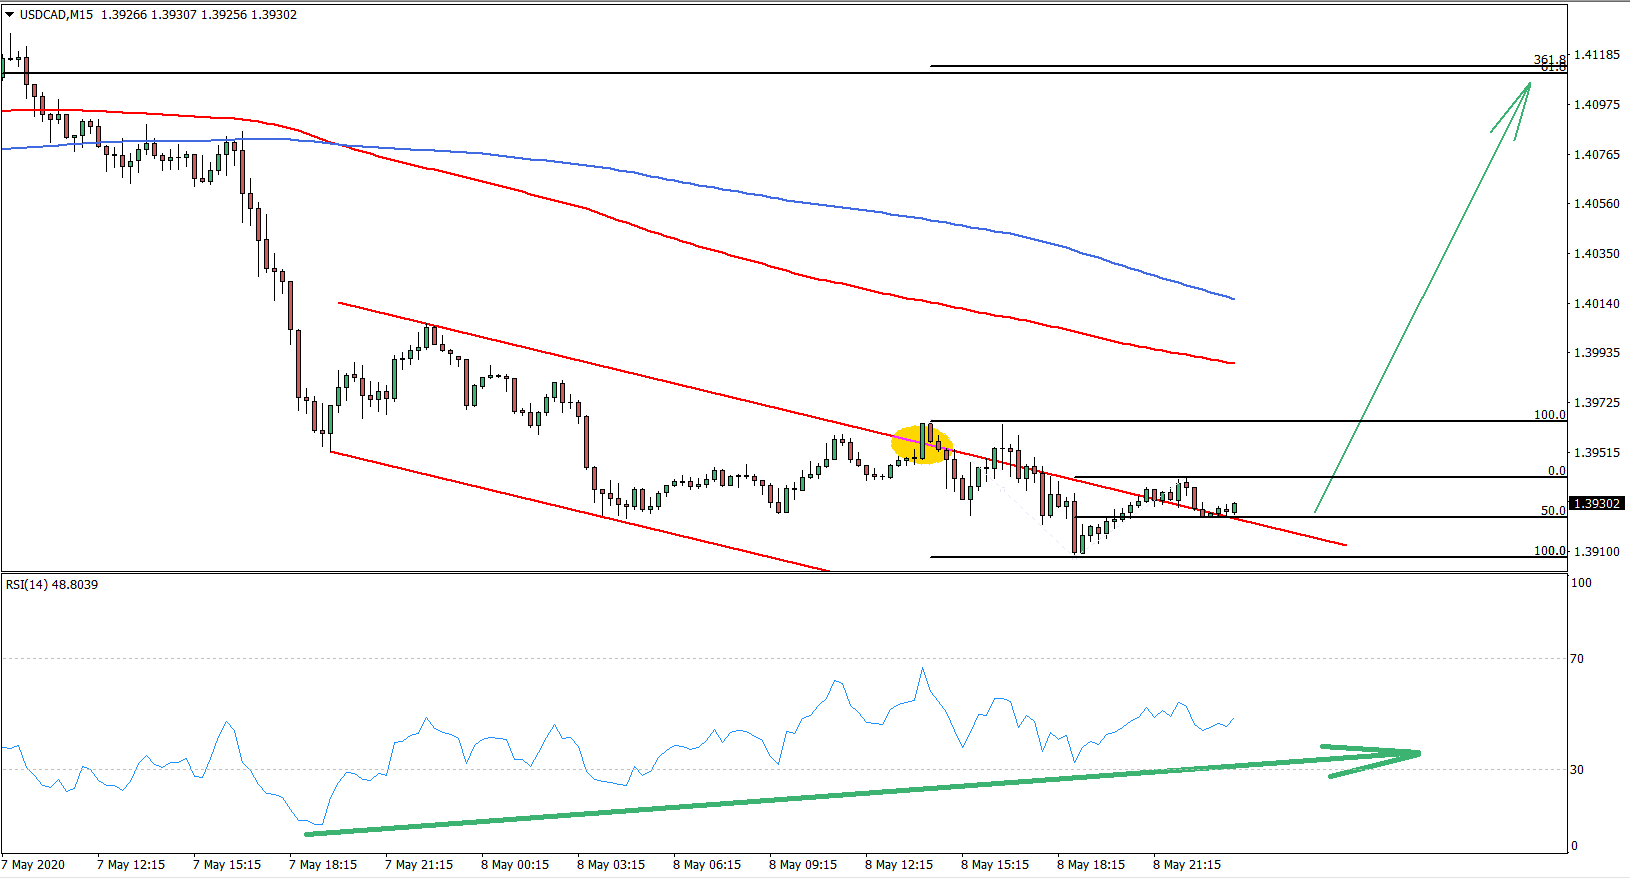 USDCAD 15M Chart May 8th 2020